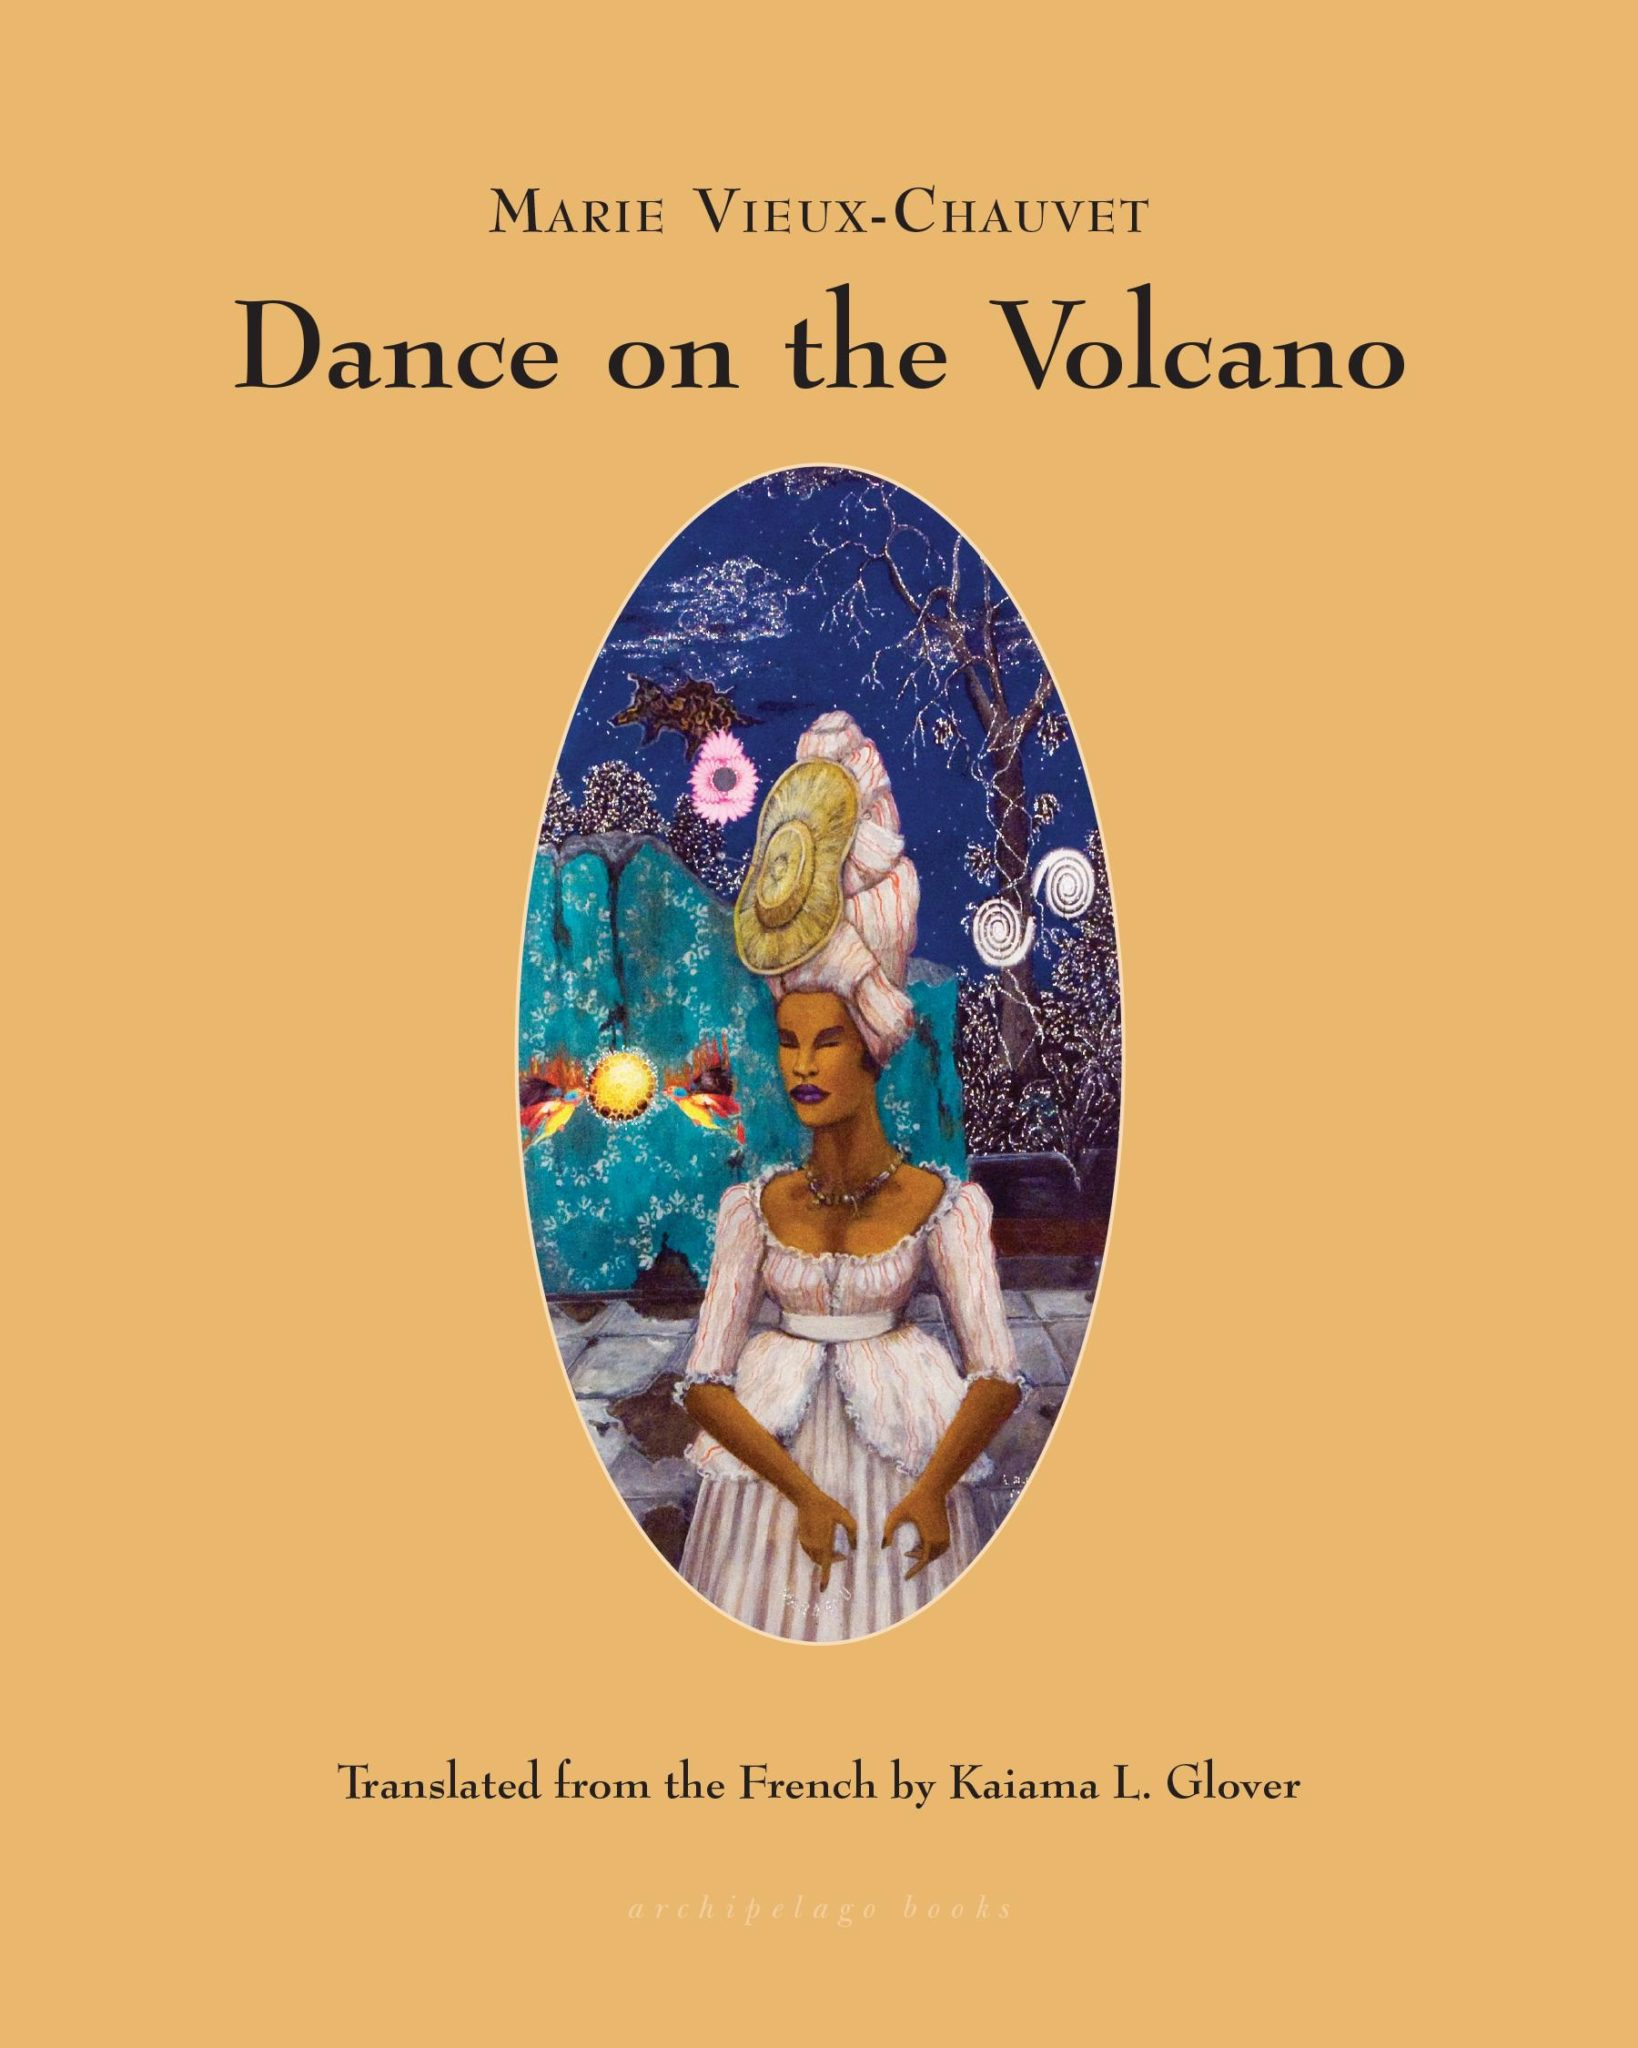 Dance on the Volcano by Marie Vieux Chauvet,translated by Kaiama L. Glover - Archipelago BooksFor fans of historical fiction or Caribbean literature—Lauren, Editor